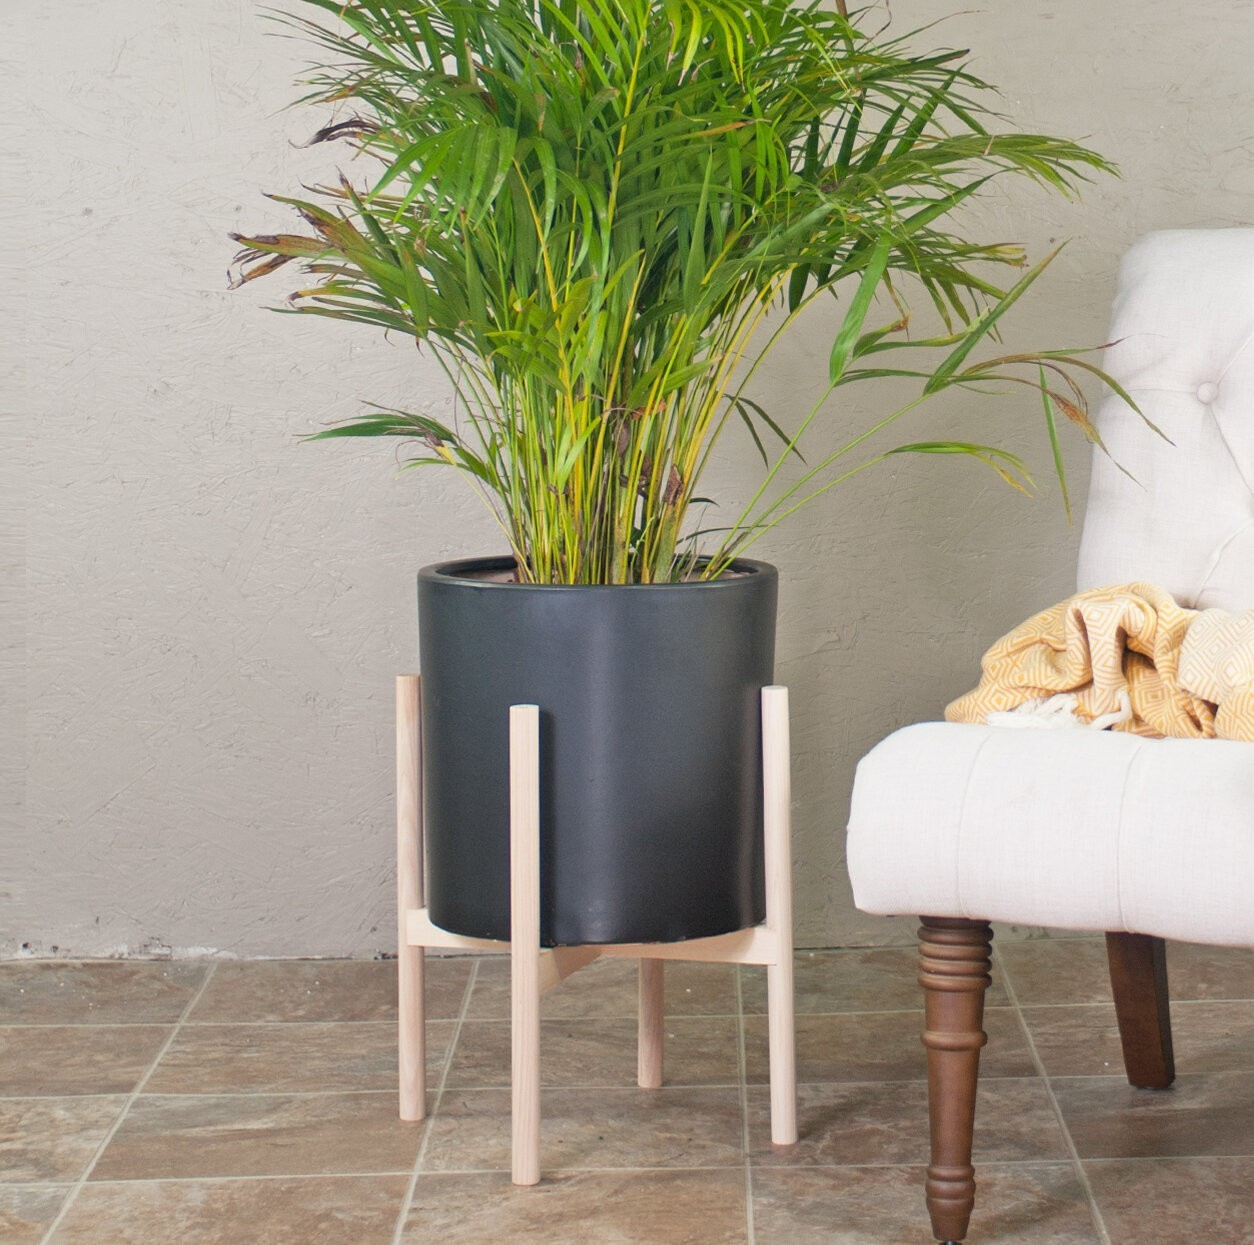 How To Choose A Planter